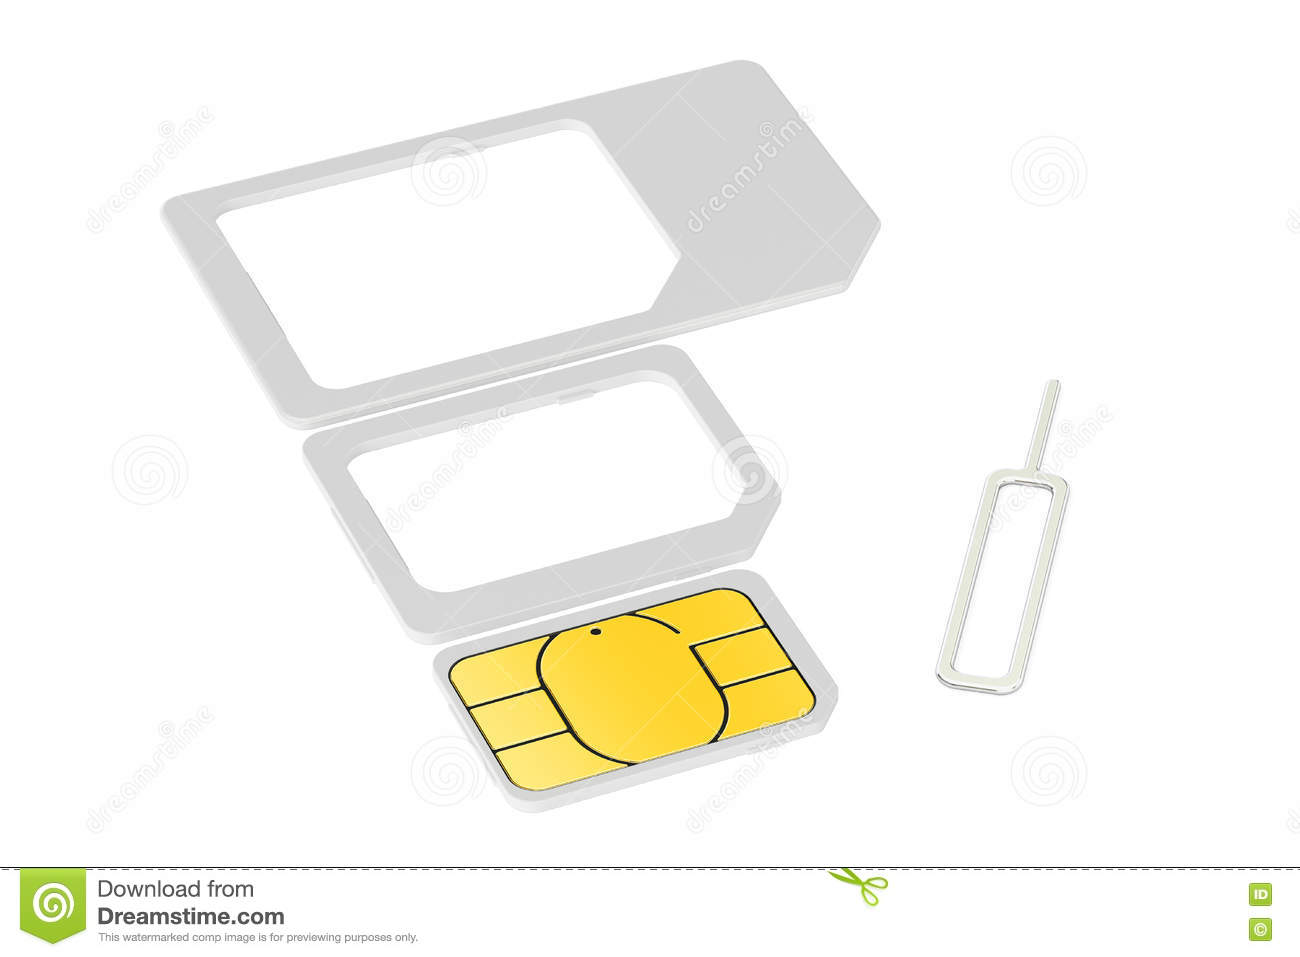 Mini Micro Nano Sim Cards With Eject Pin 3d Rendering Stock